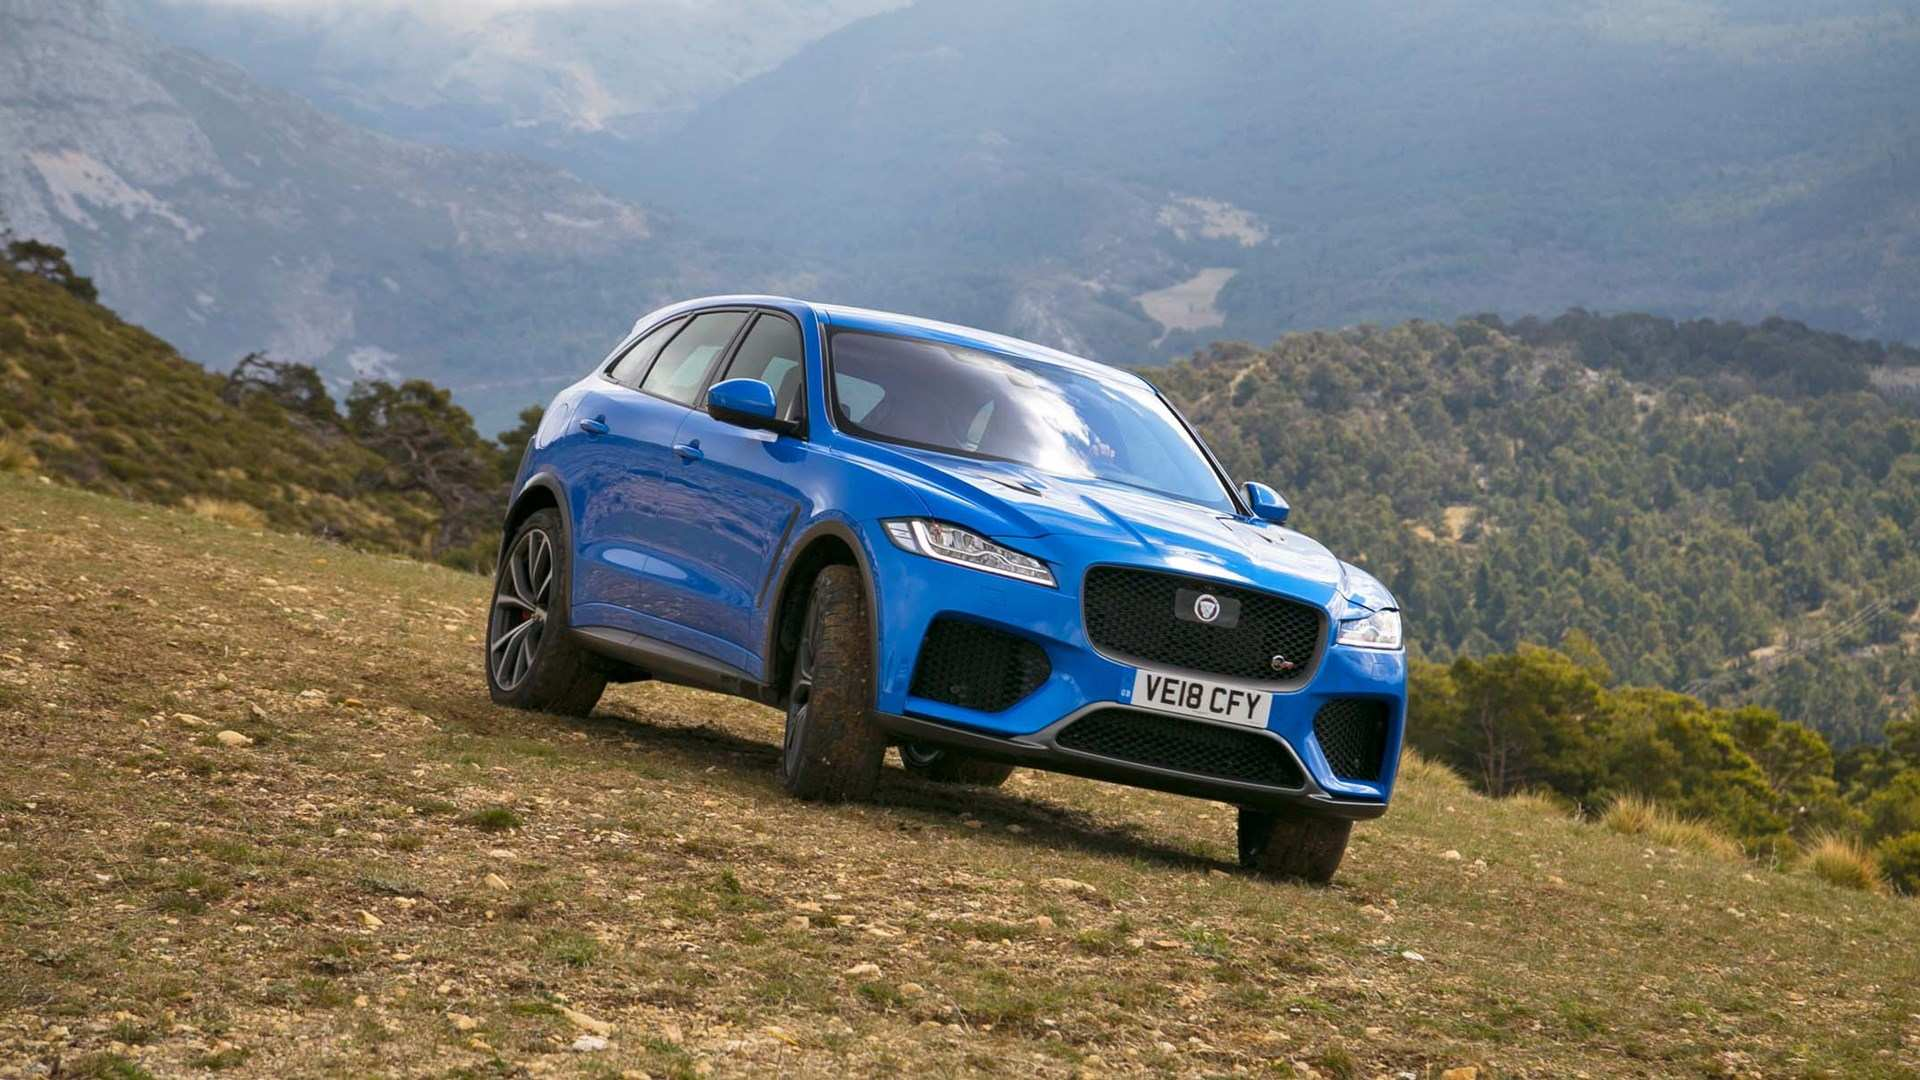 47 Gallery of Jaguar I Pace 2020 Model 2 Release by Jaguar I Pace 2020 Model 2